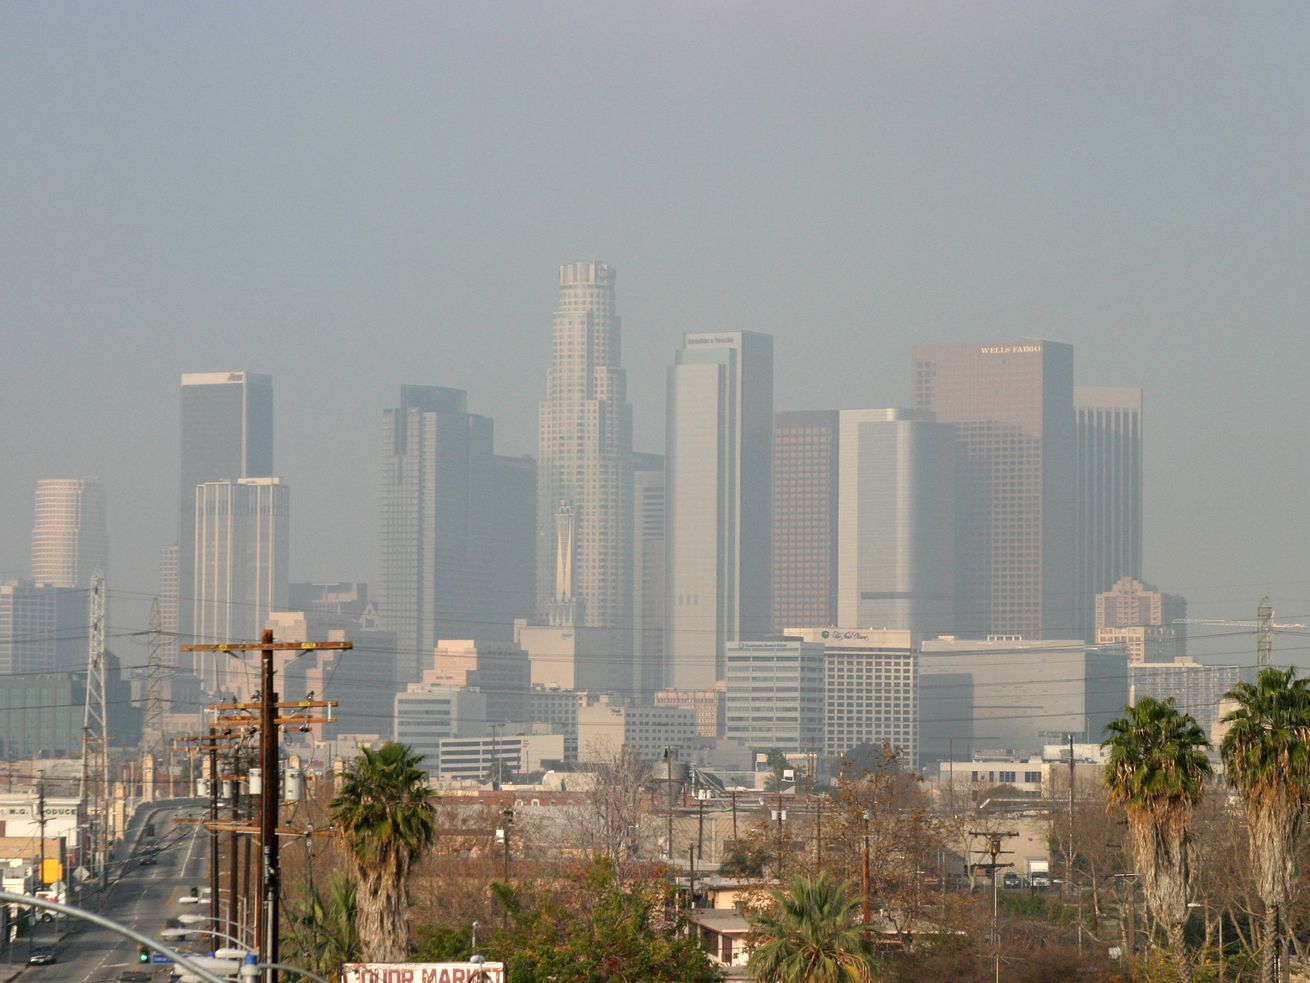 The Los Angeles metro area had a higher average ozone level than any other city in the nation.